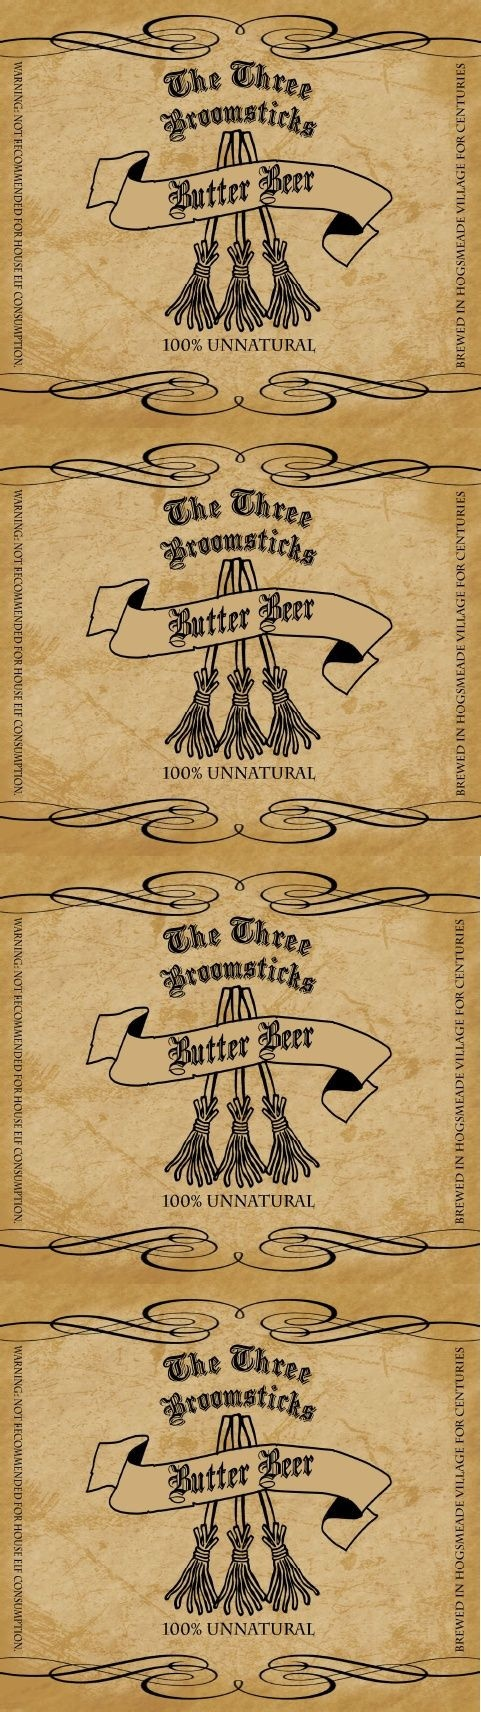 15 Unique Harry Potter Labels Pictures | Waiyiptat - Free Printable Butterbeer Labels